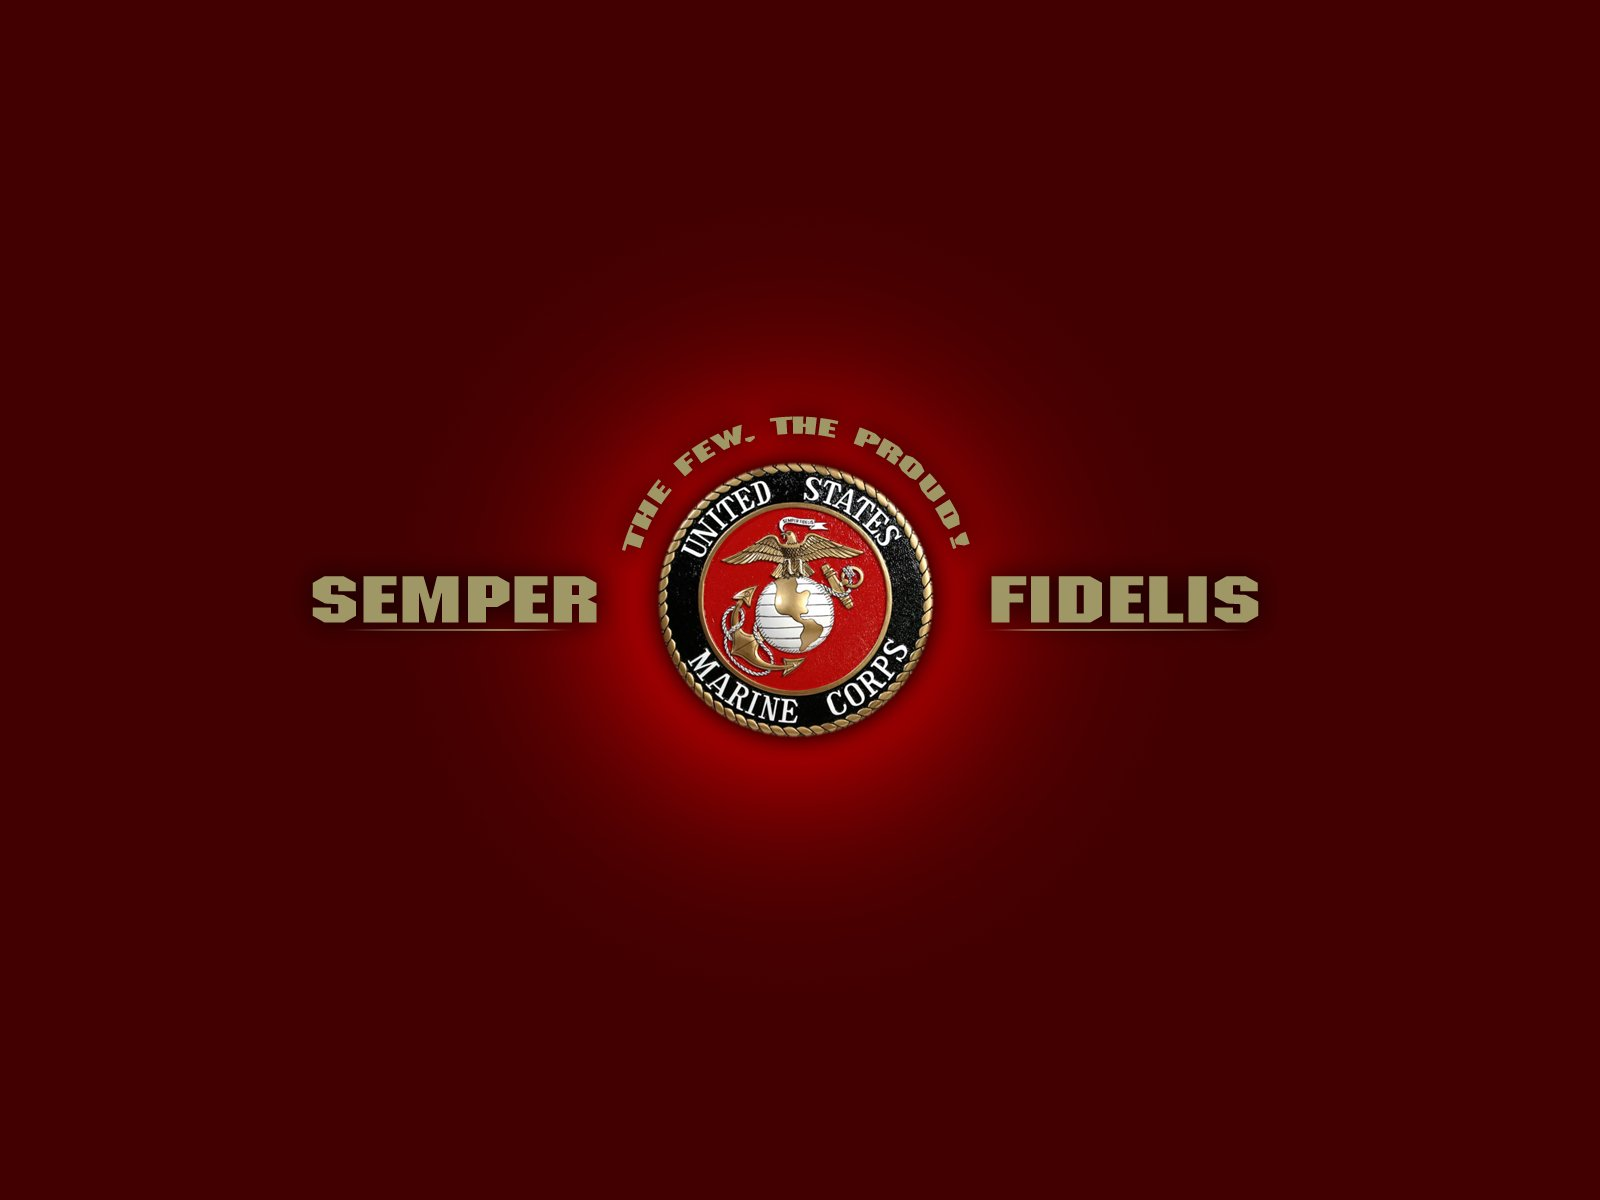 70 Marines Hd Wallpapers Background Images Wallpaper Abyss